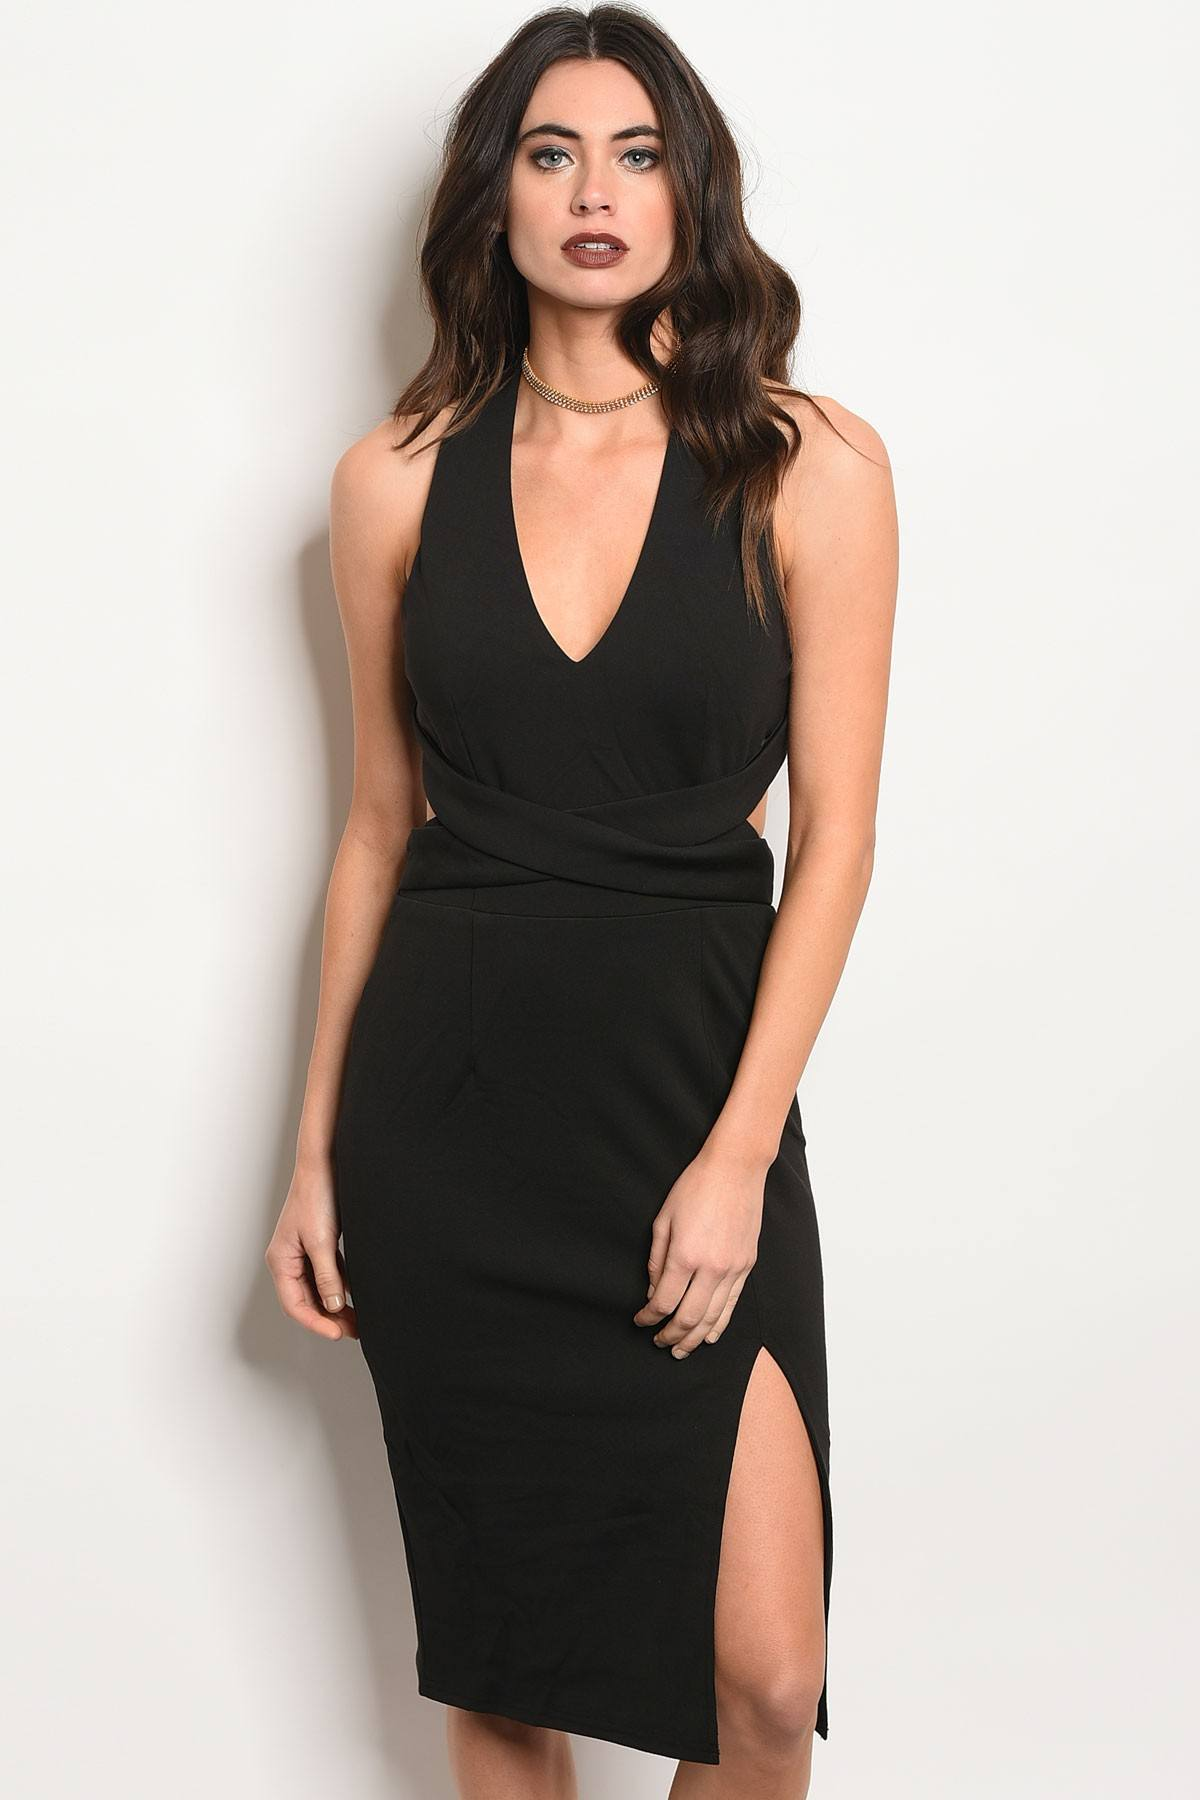 Ladies fashion sleeveless fitted bodycon dress with a v neckline and thigh slit